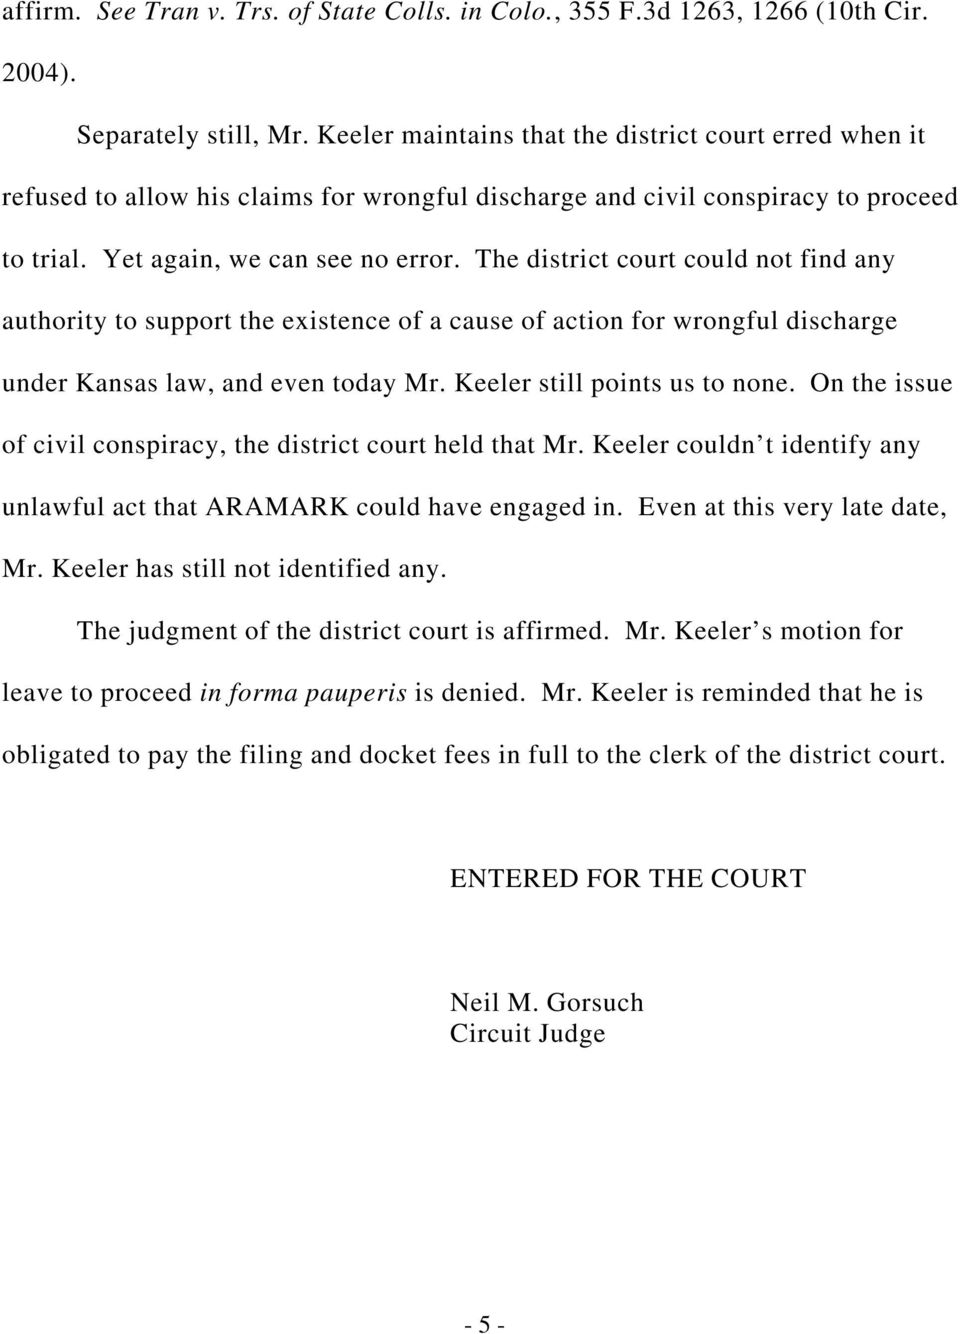 The district court could not find any authority to support the existence of a cause of action for wrongful discharge under Kansas law, and even today Mr. Keeler still points us to none.